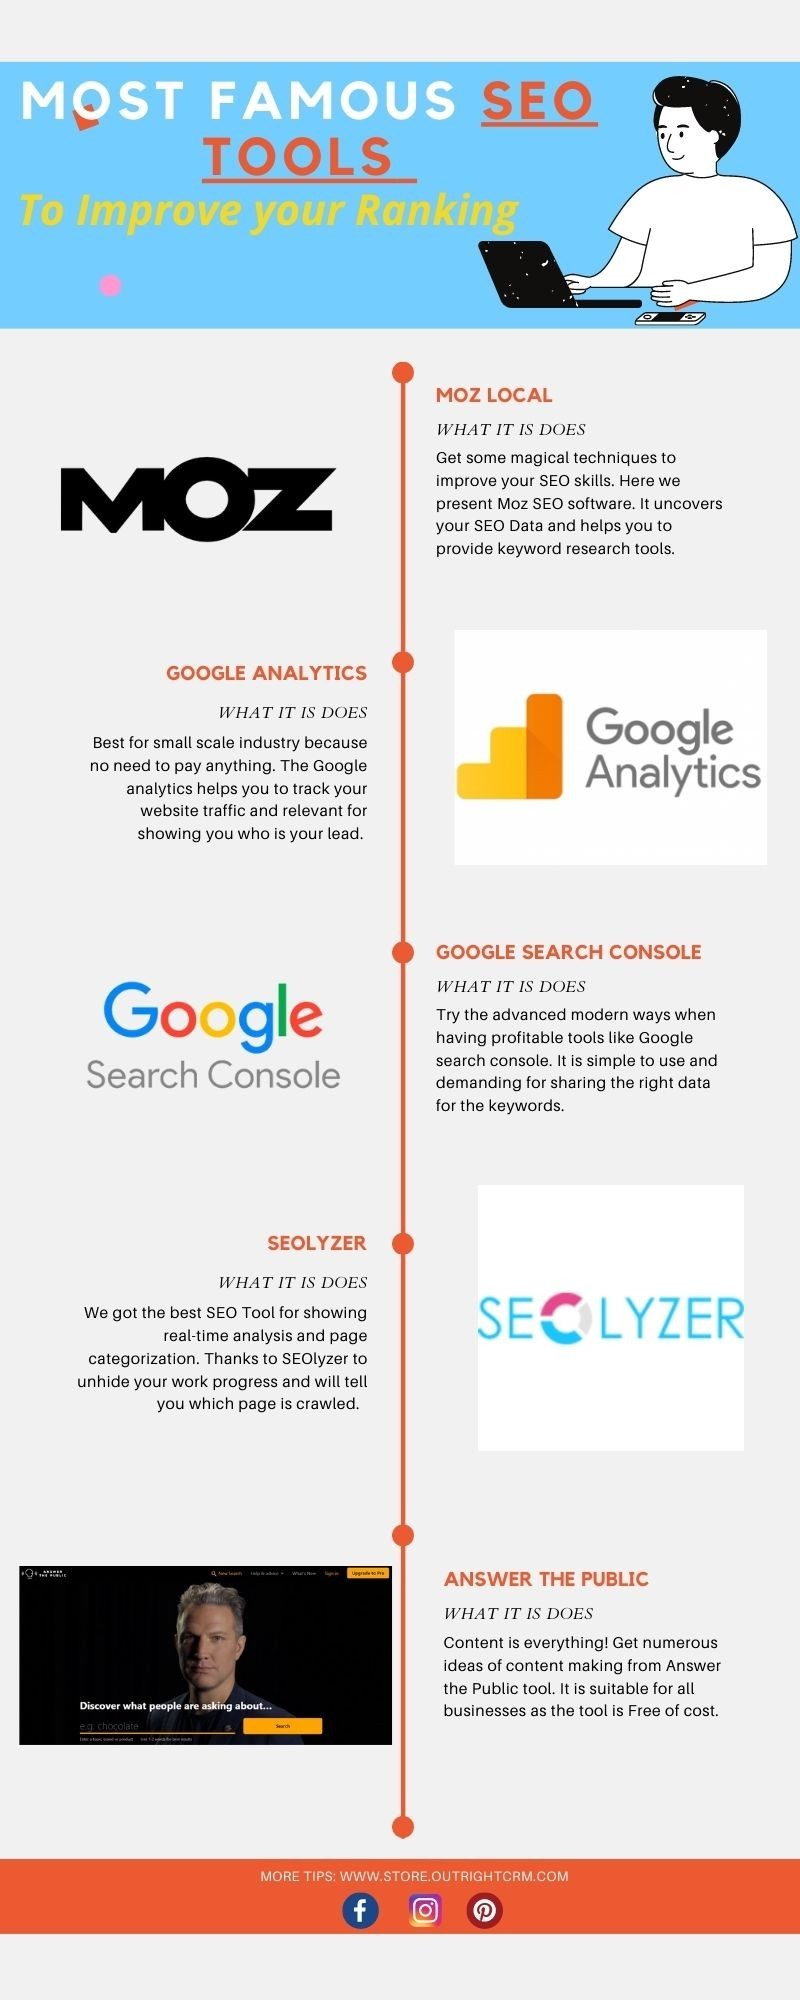 Most Famous 5 SEO Tools- To Improve Your Ranking